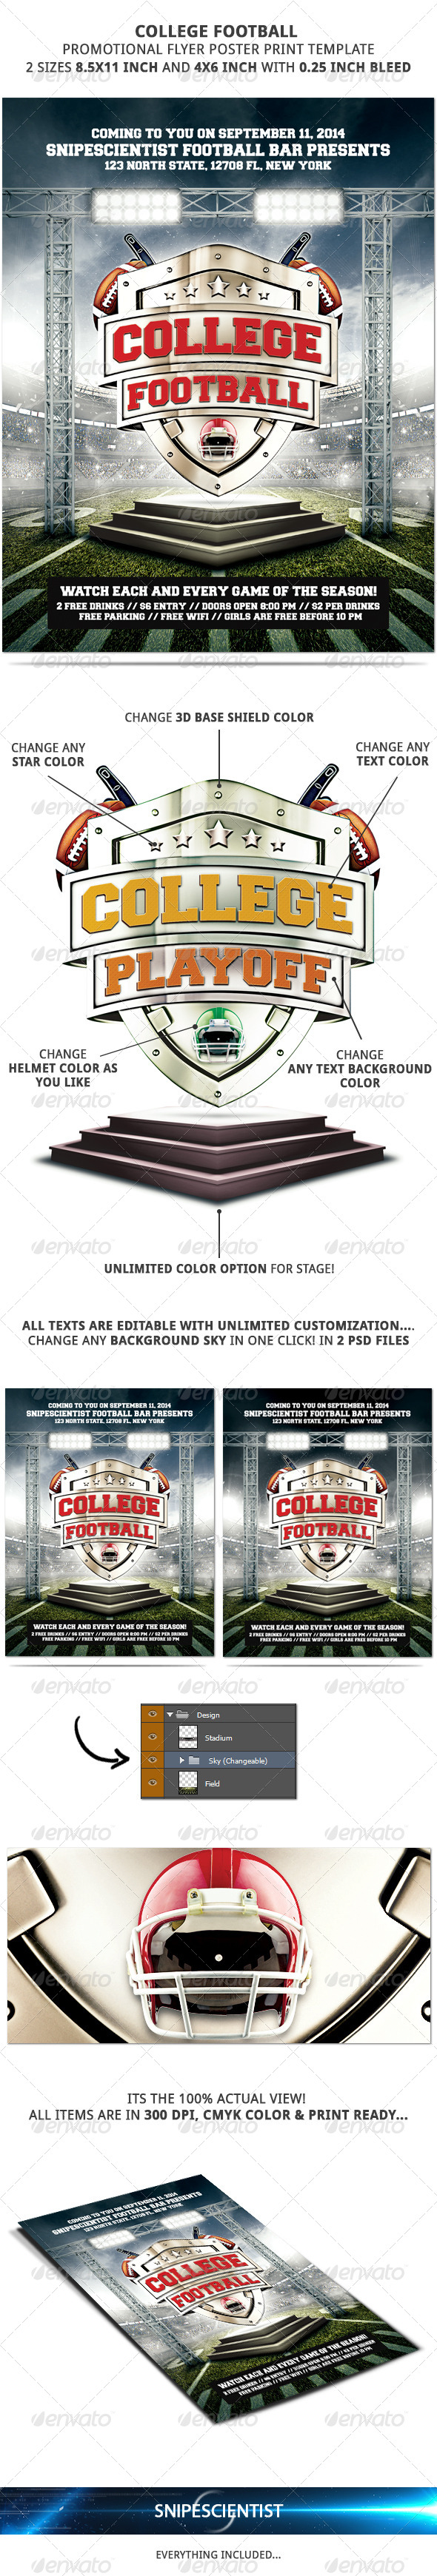 GraphicRiver College Football Flyer Template No Model Needed 8684397